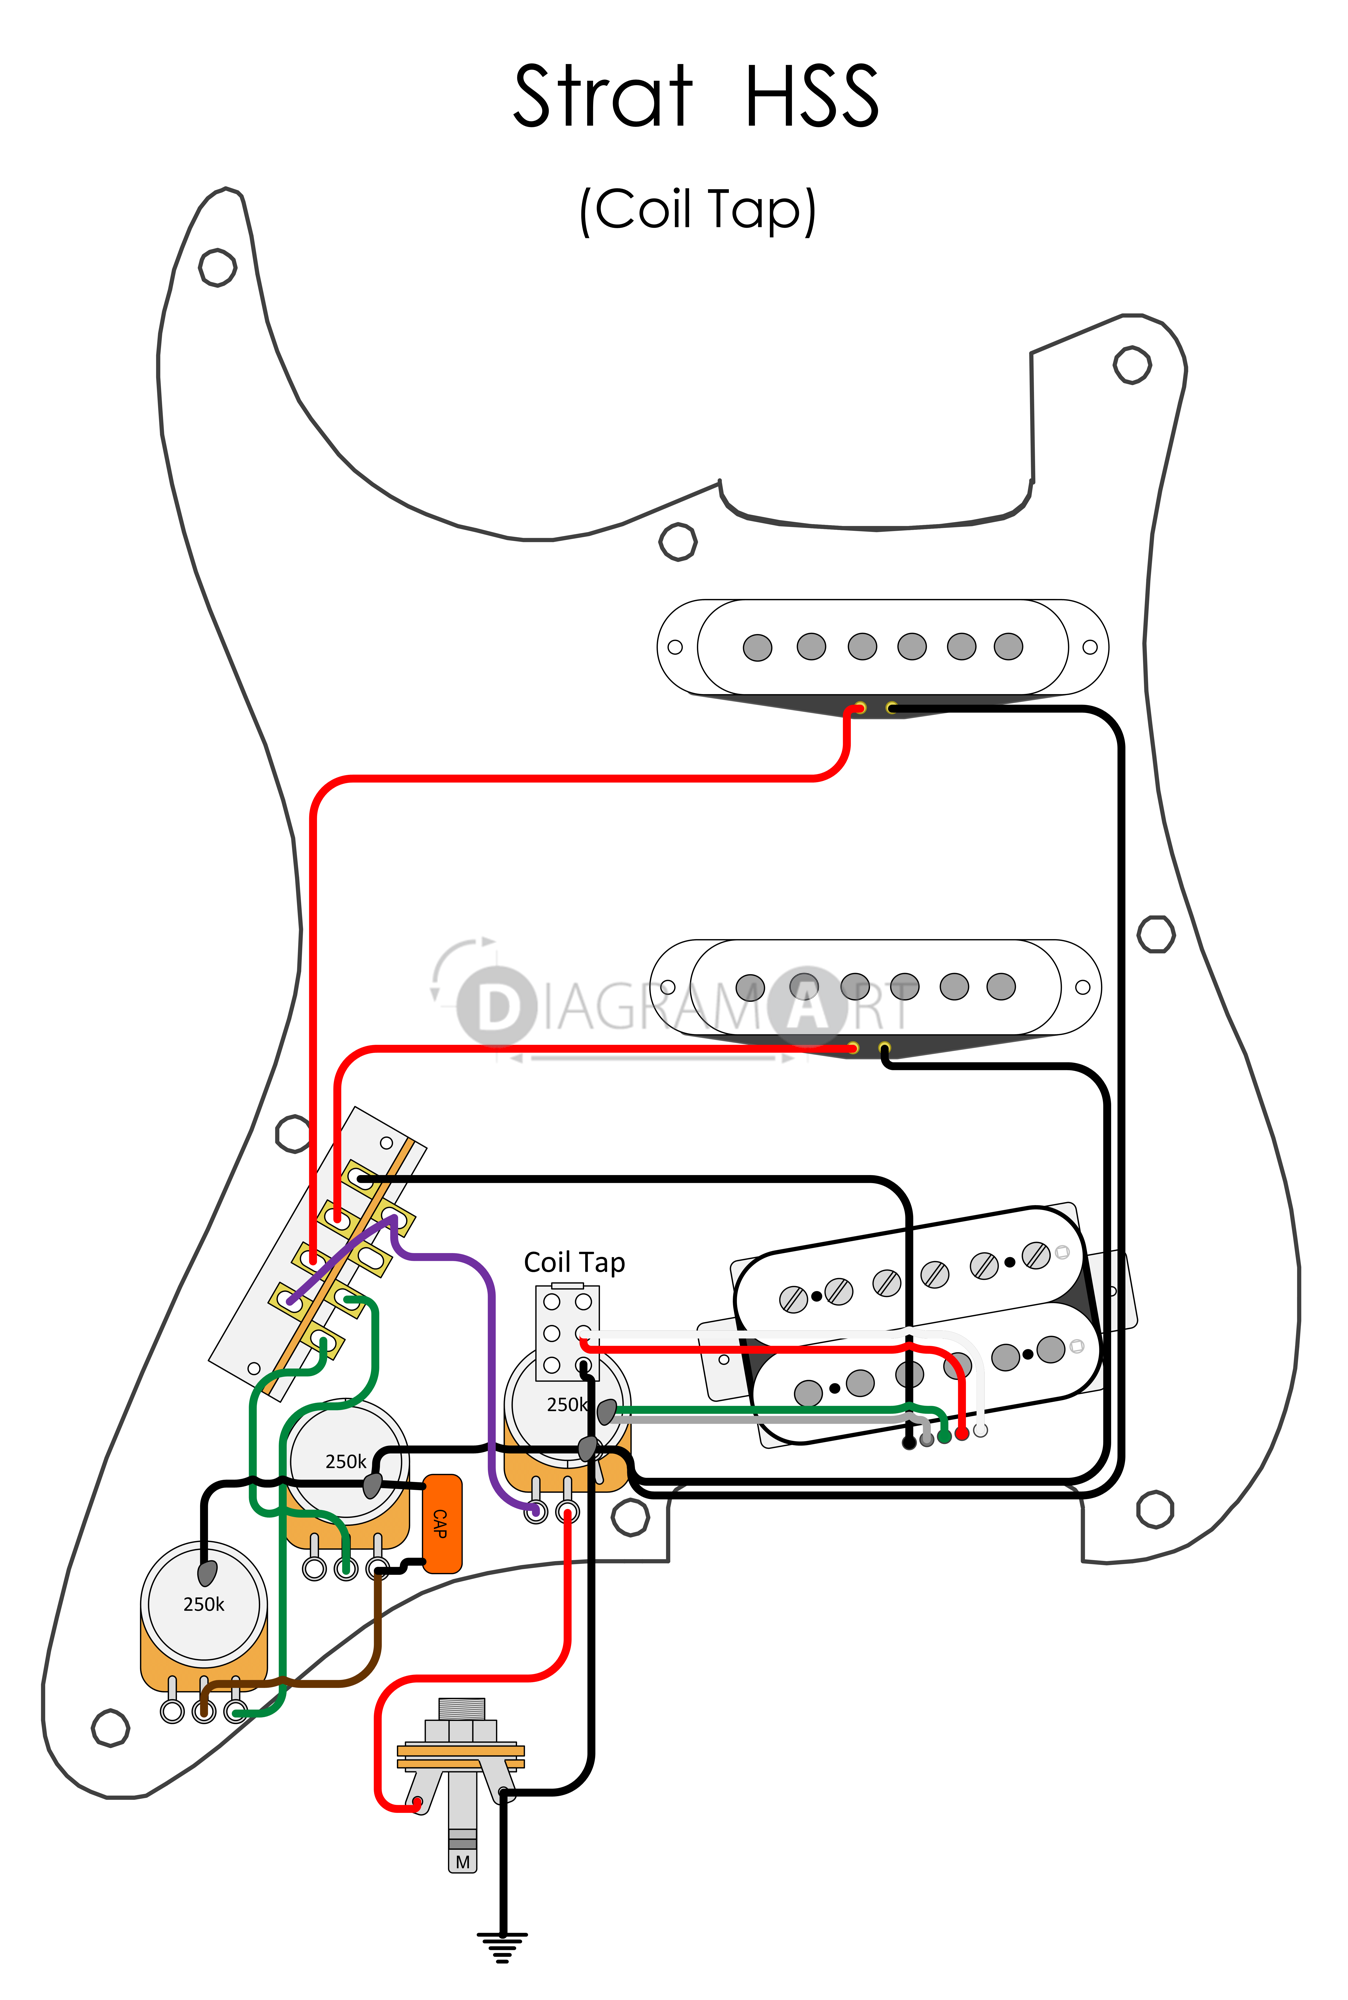 Jackson Hss Wiring - Wiring Diagrams on